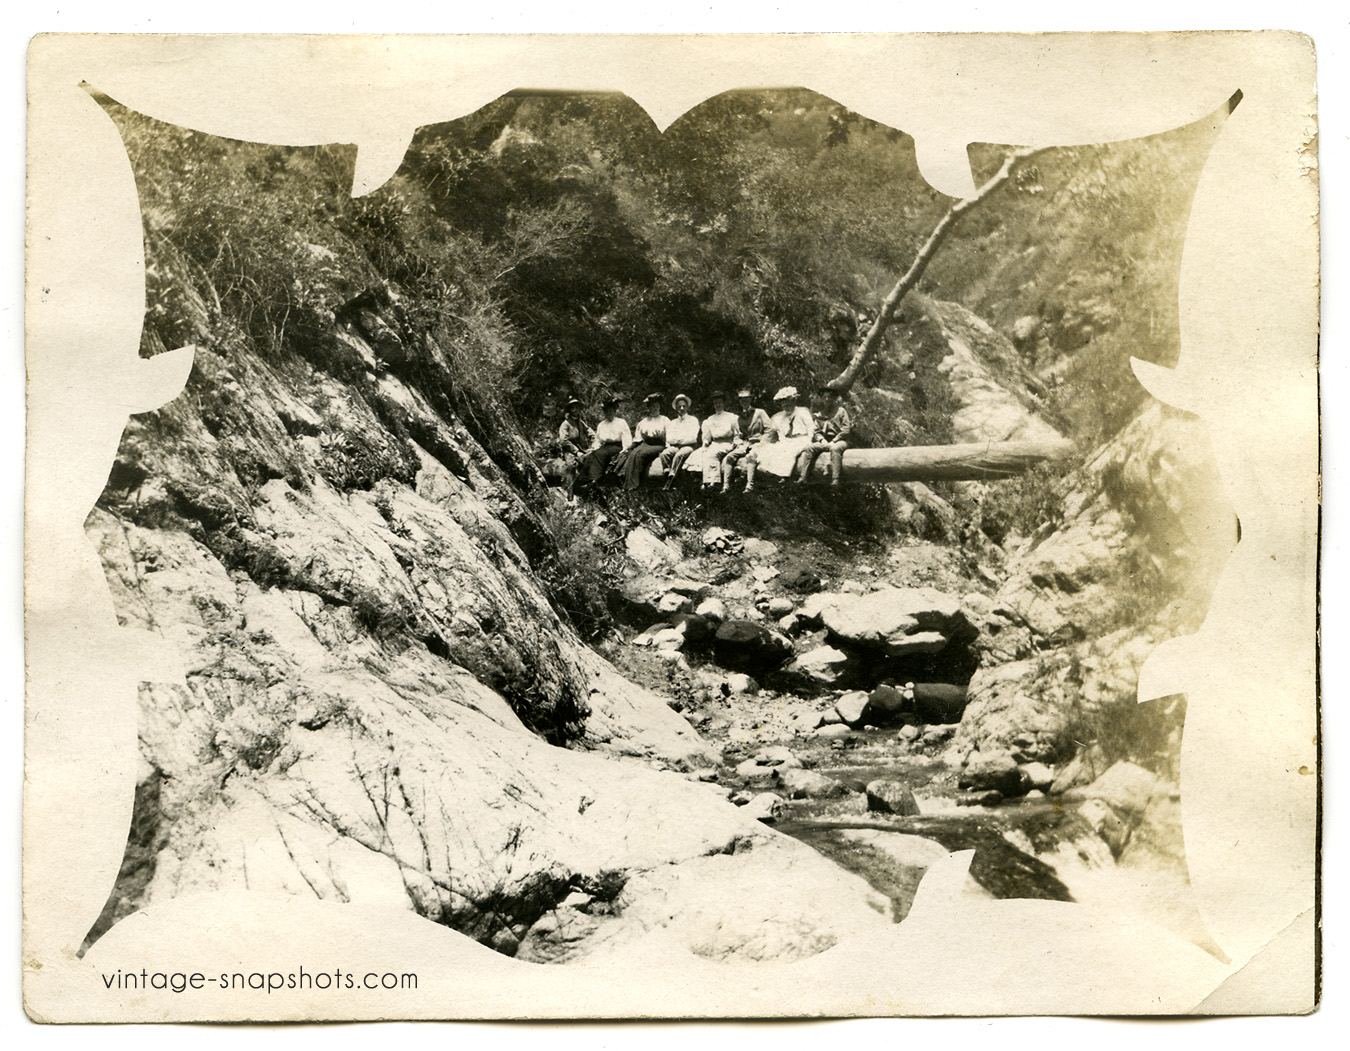 Vintage snapshot of a group of men and women in the San Gabriel Mountains, east of L.A.